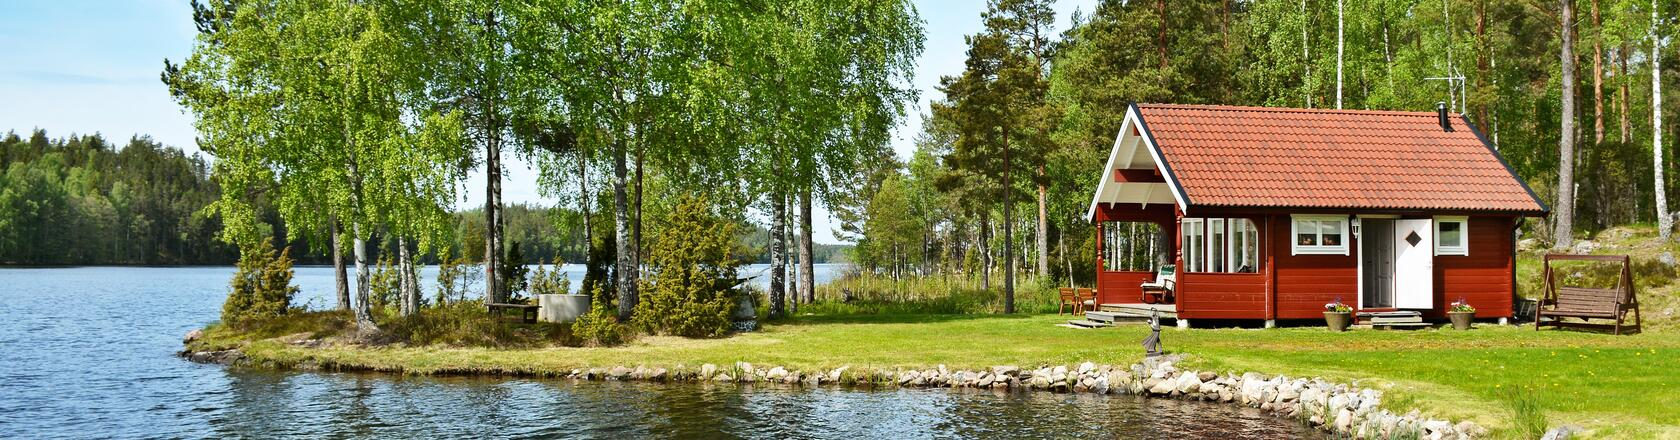 Valdemarsvik in Sweden - Rent a holiday home in with DanCenter